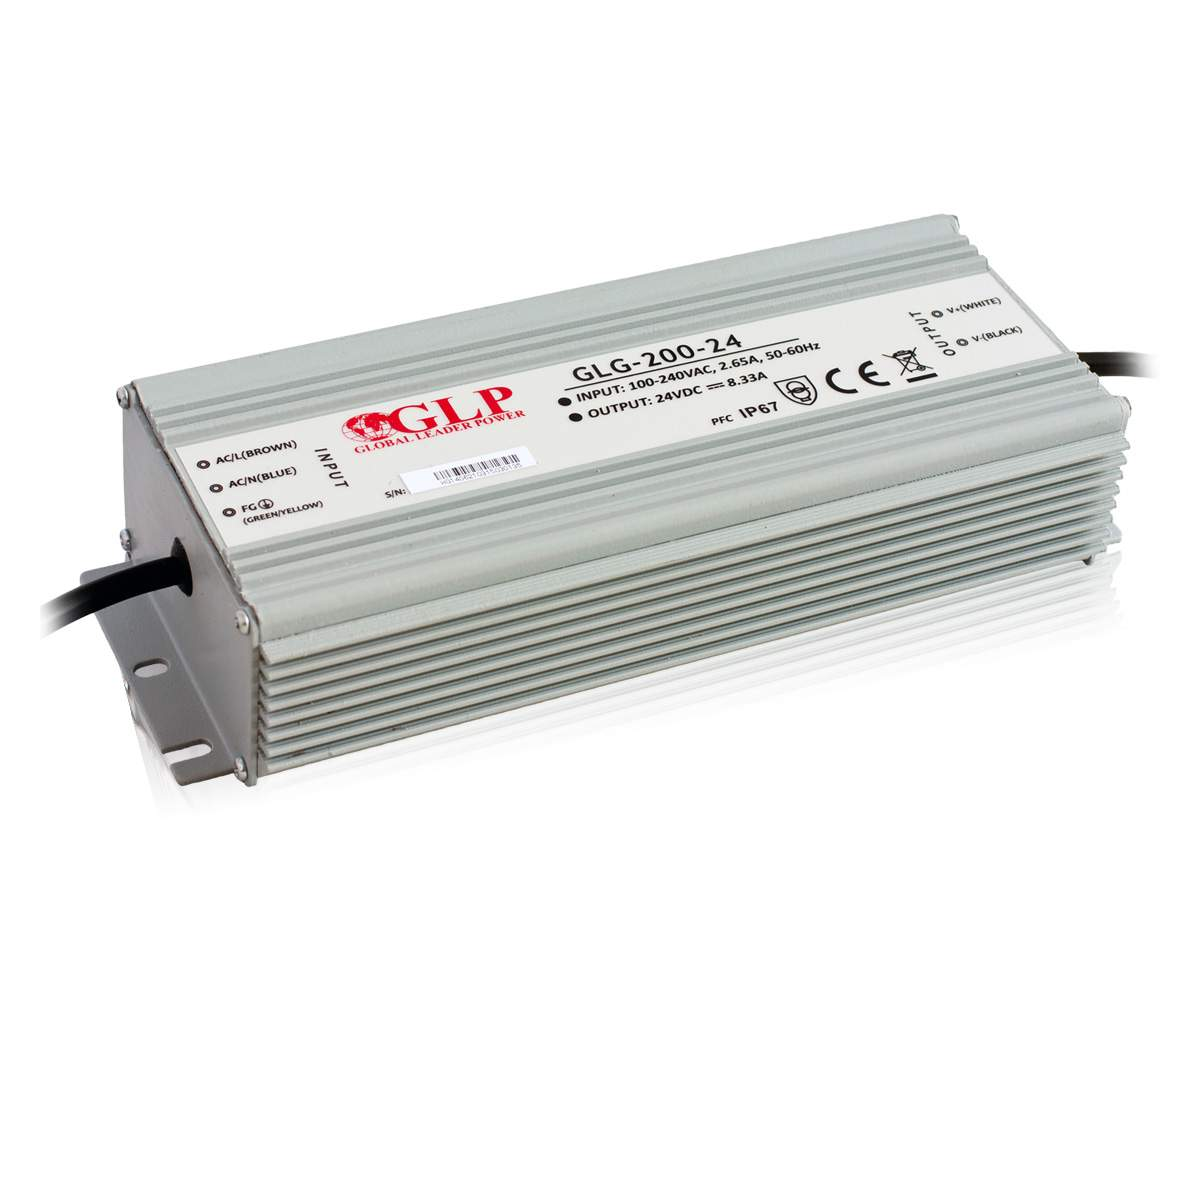 LED power supply unit LED power supply unit GLP POWER 24V GLG-200-24  200W  IP67